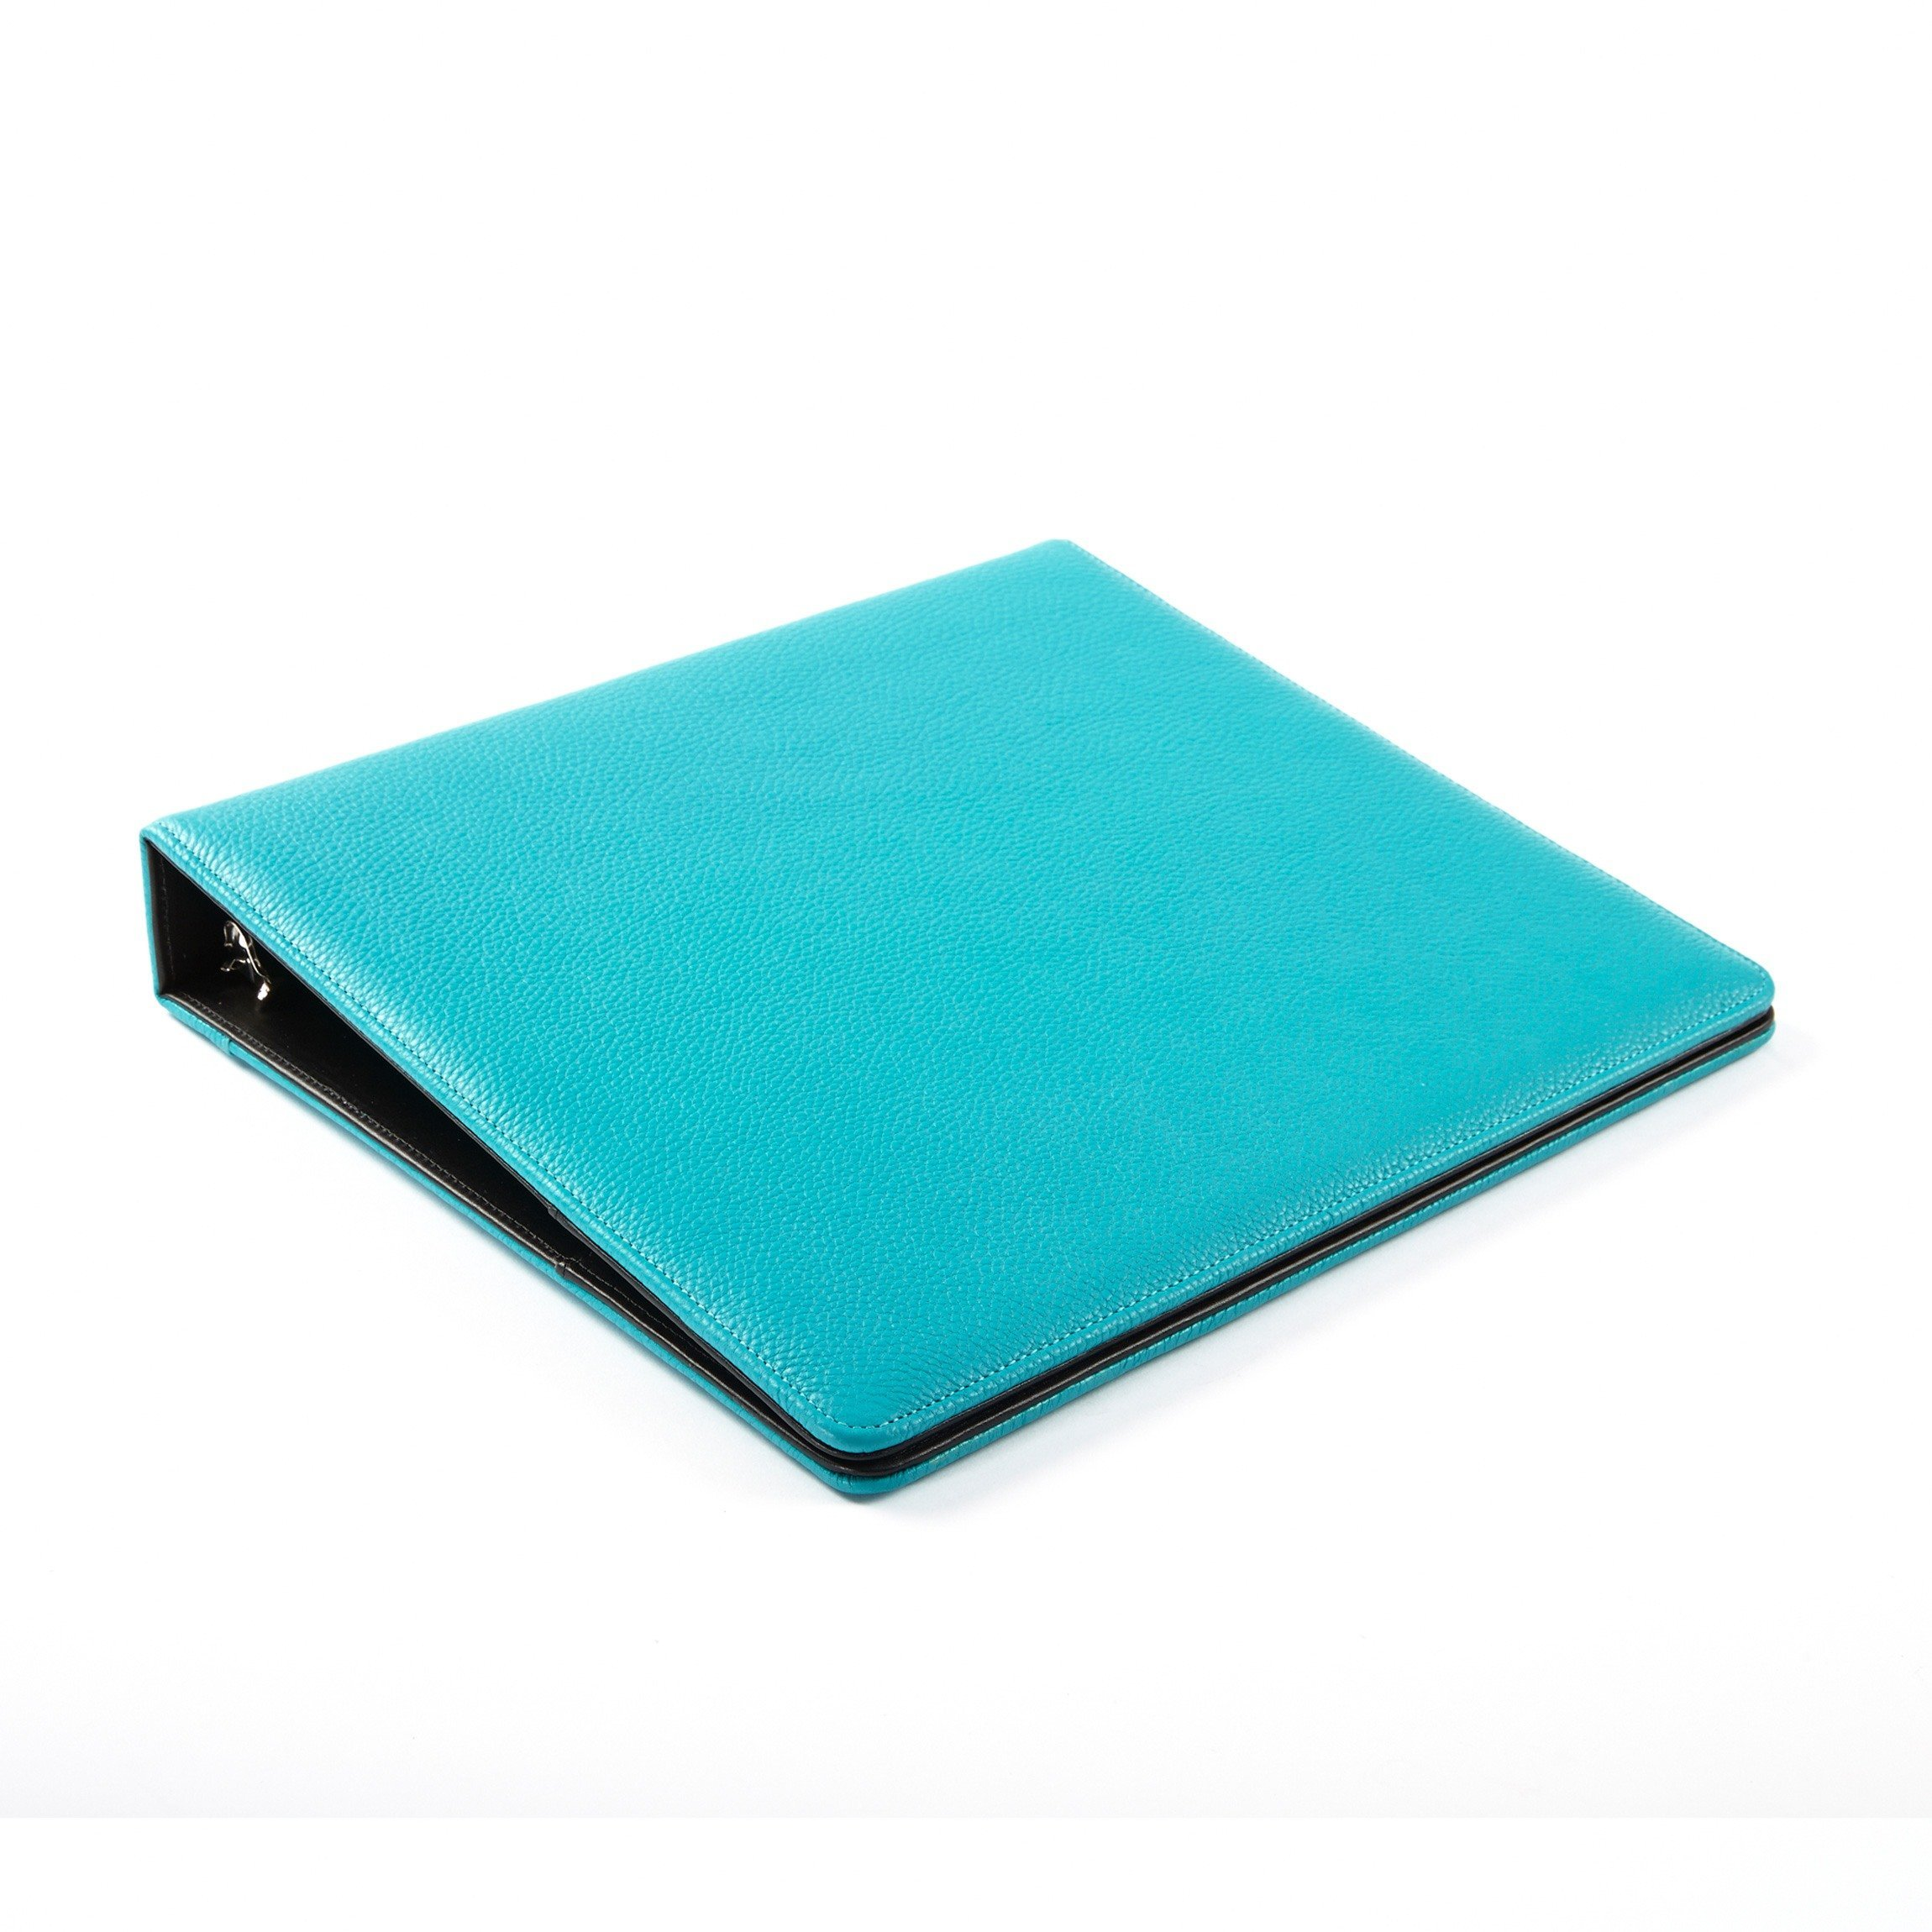 Leatherology Deluxe 3-Ring Presentation Binder with Interior Pockets - Full Grain Leather - Teal (blue)